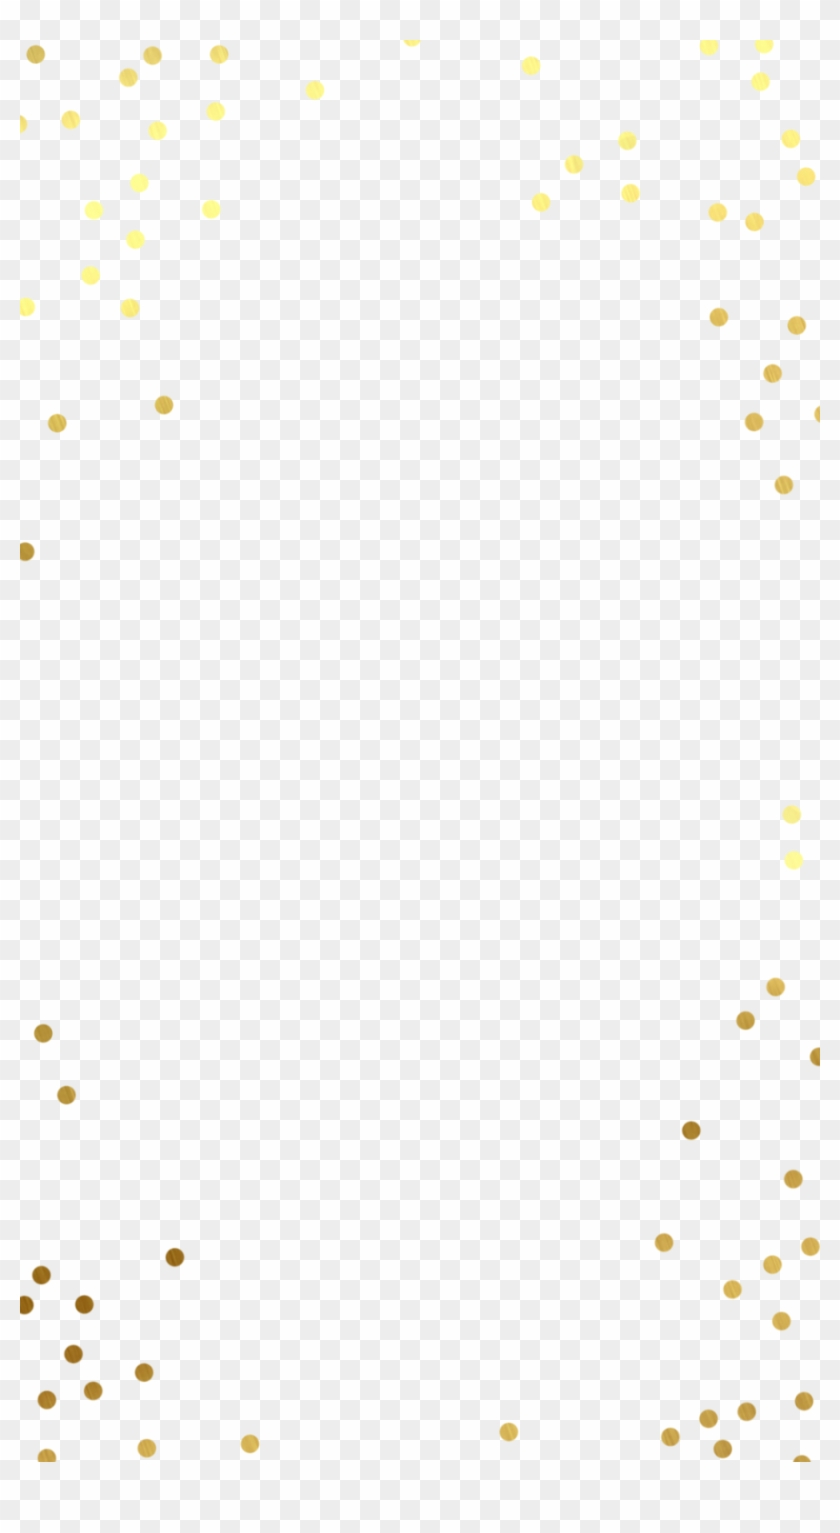 medium resolution of gold confetti png 1080 x 1920 clipart confetti pattern transparent png